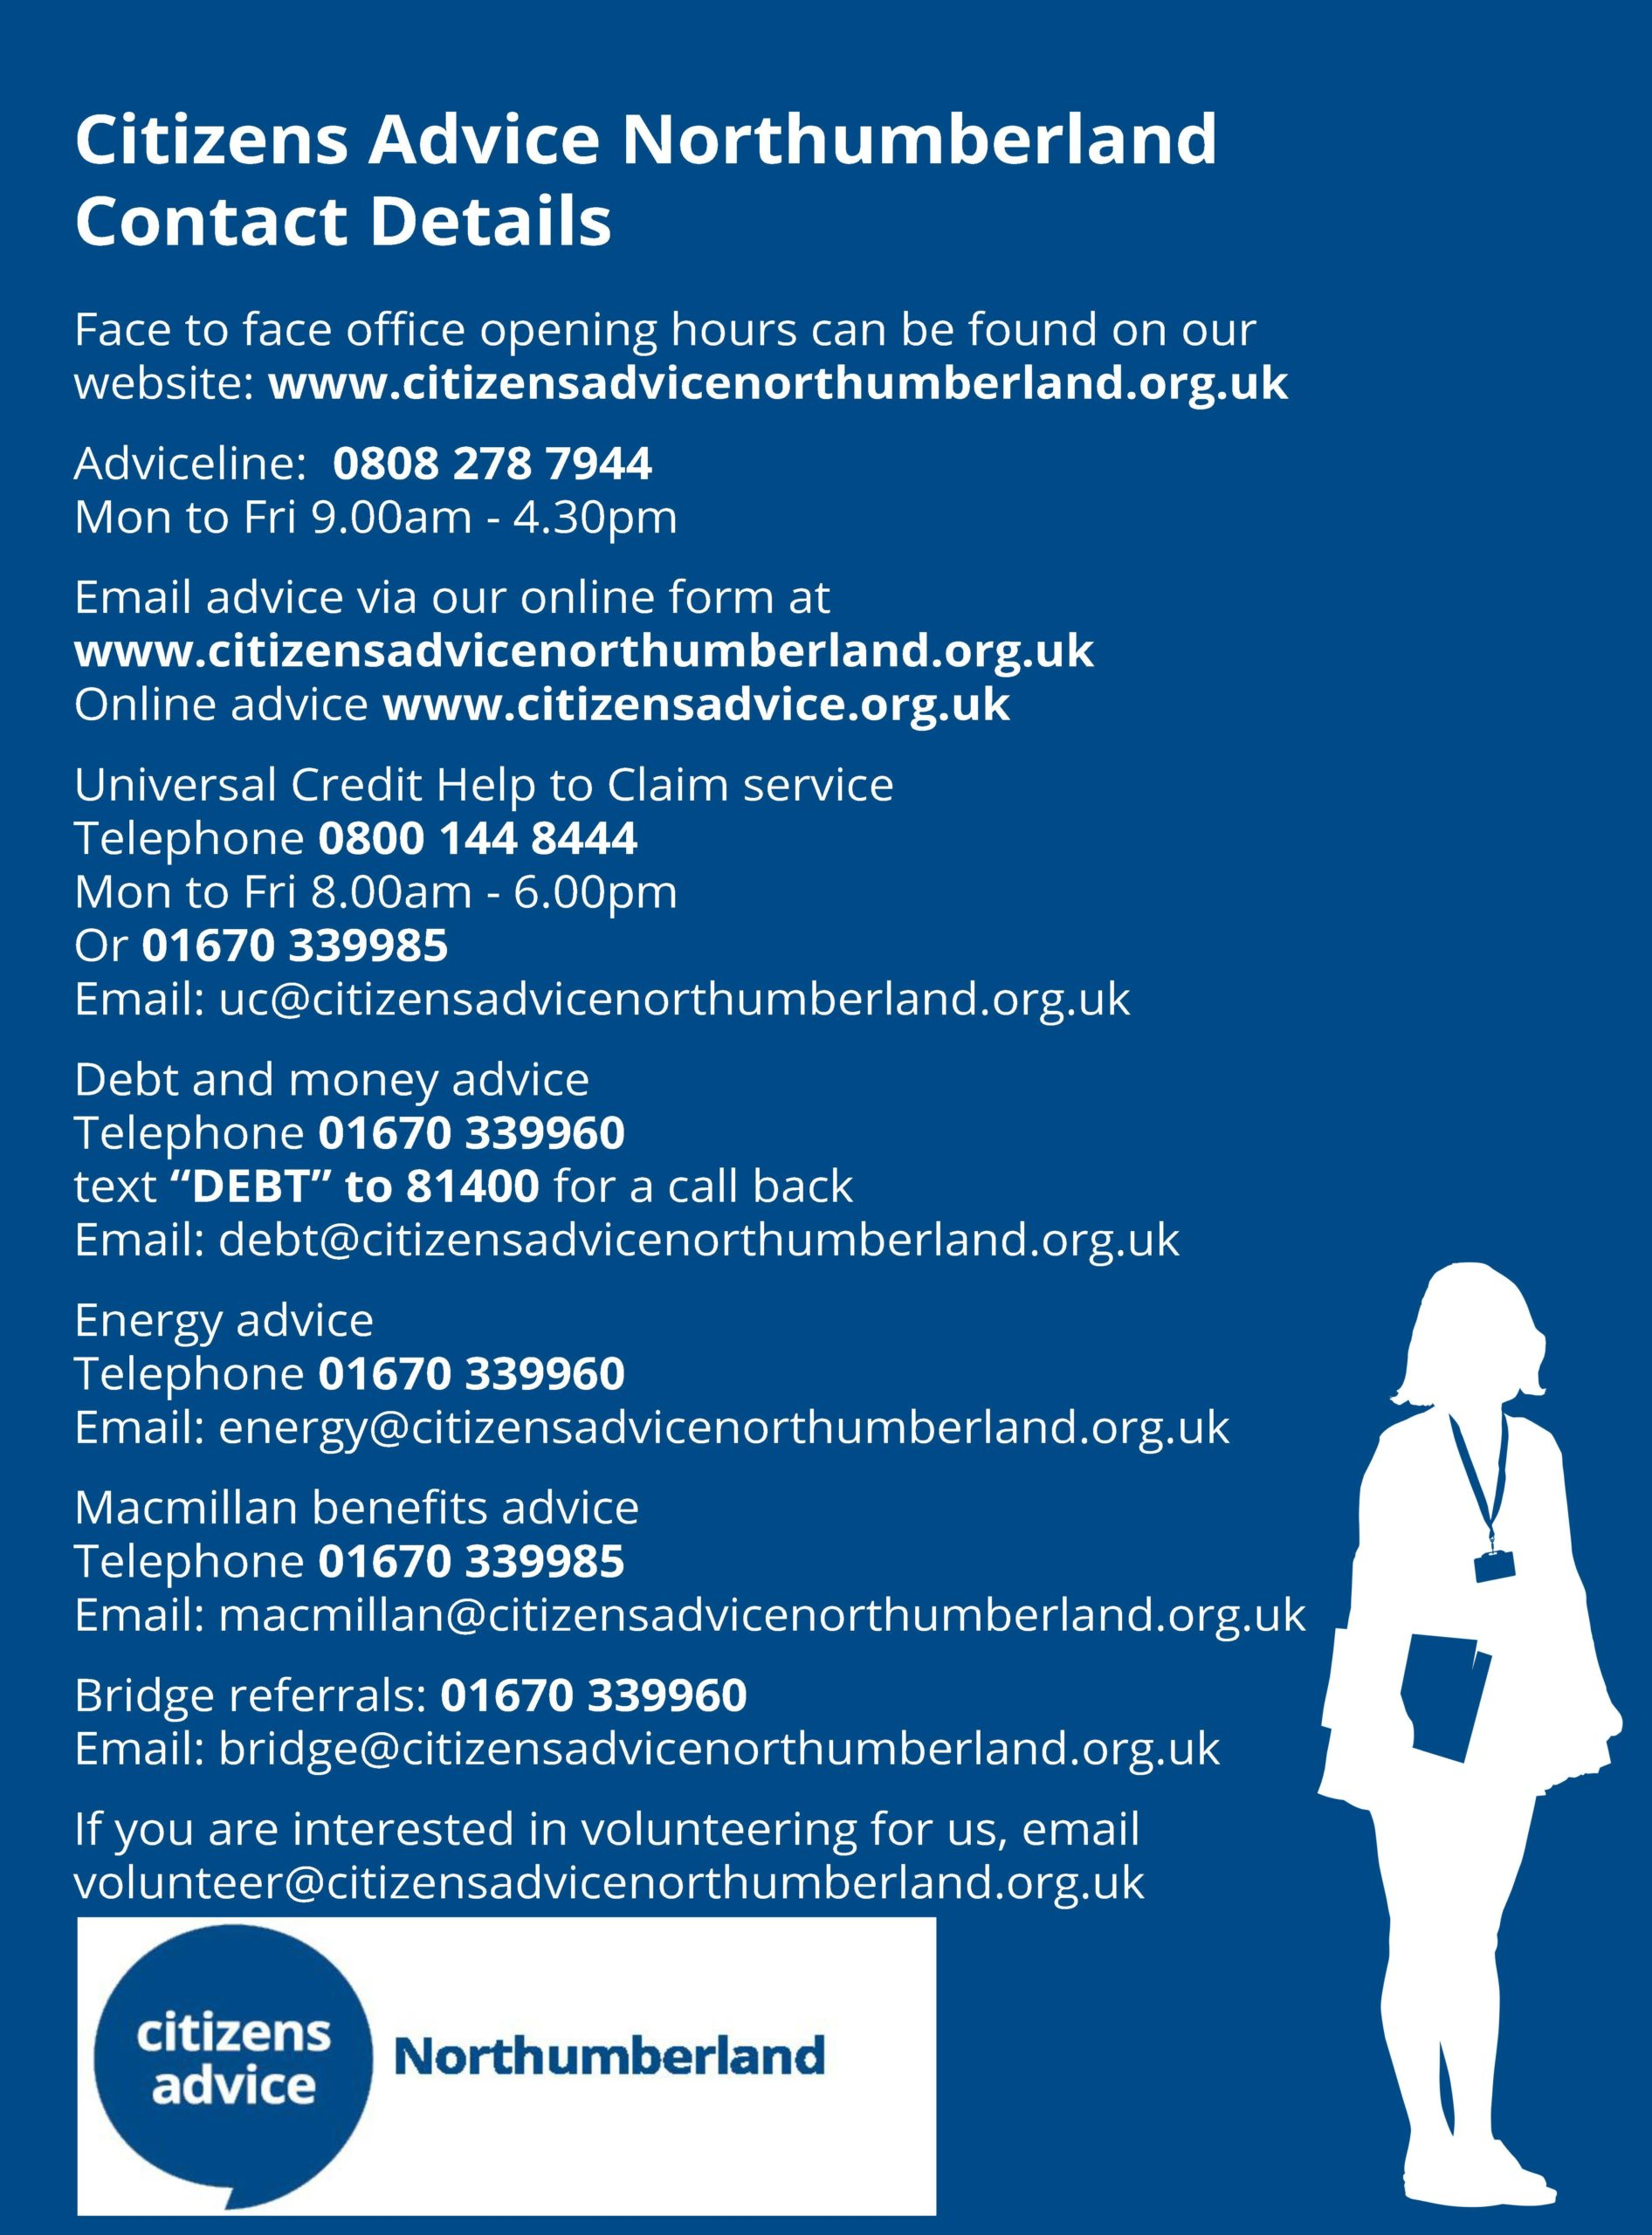 Citizens Advice Northumberland Contact Details